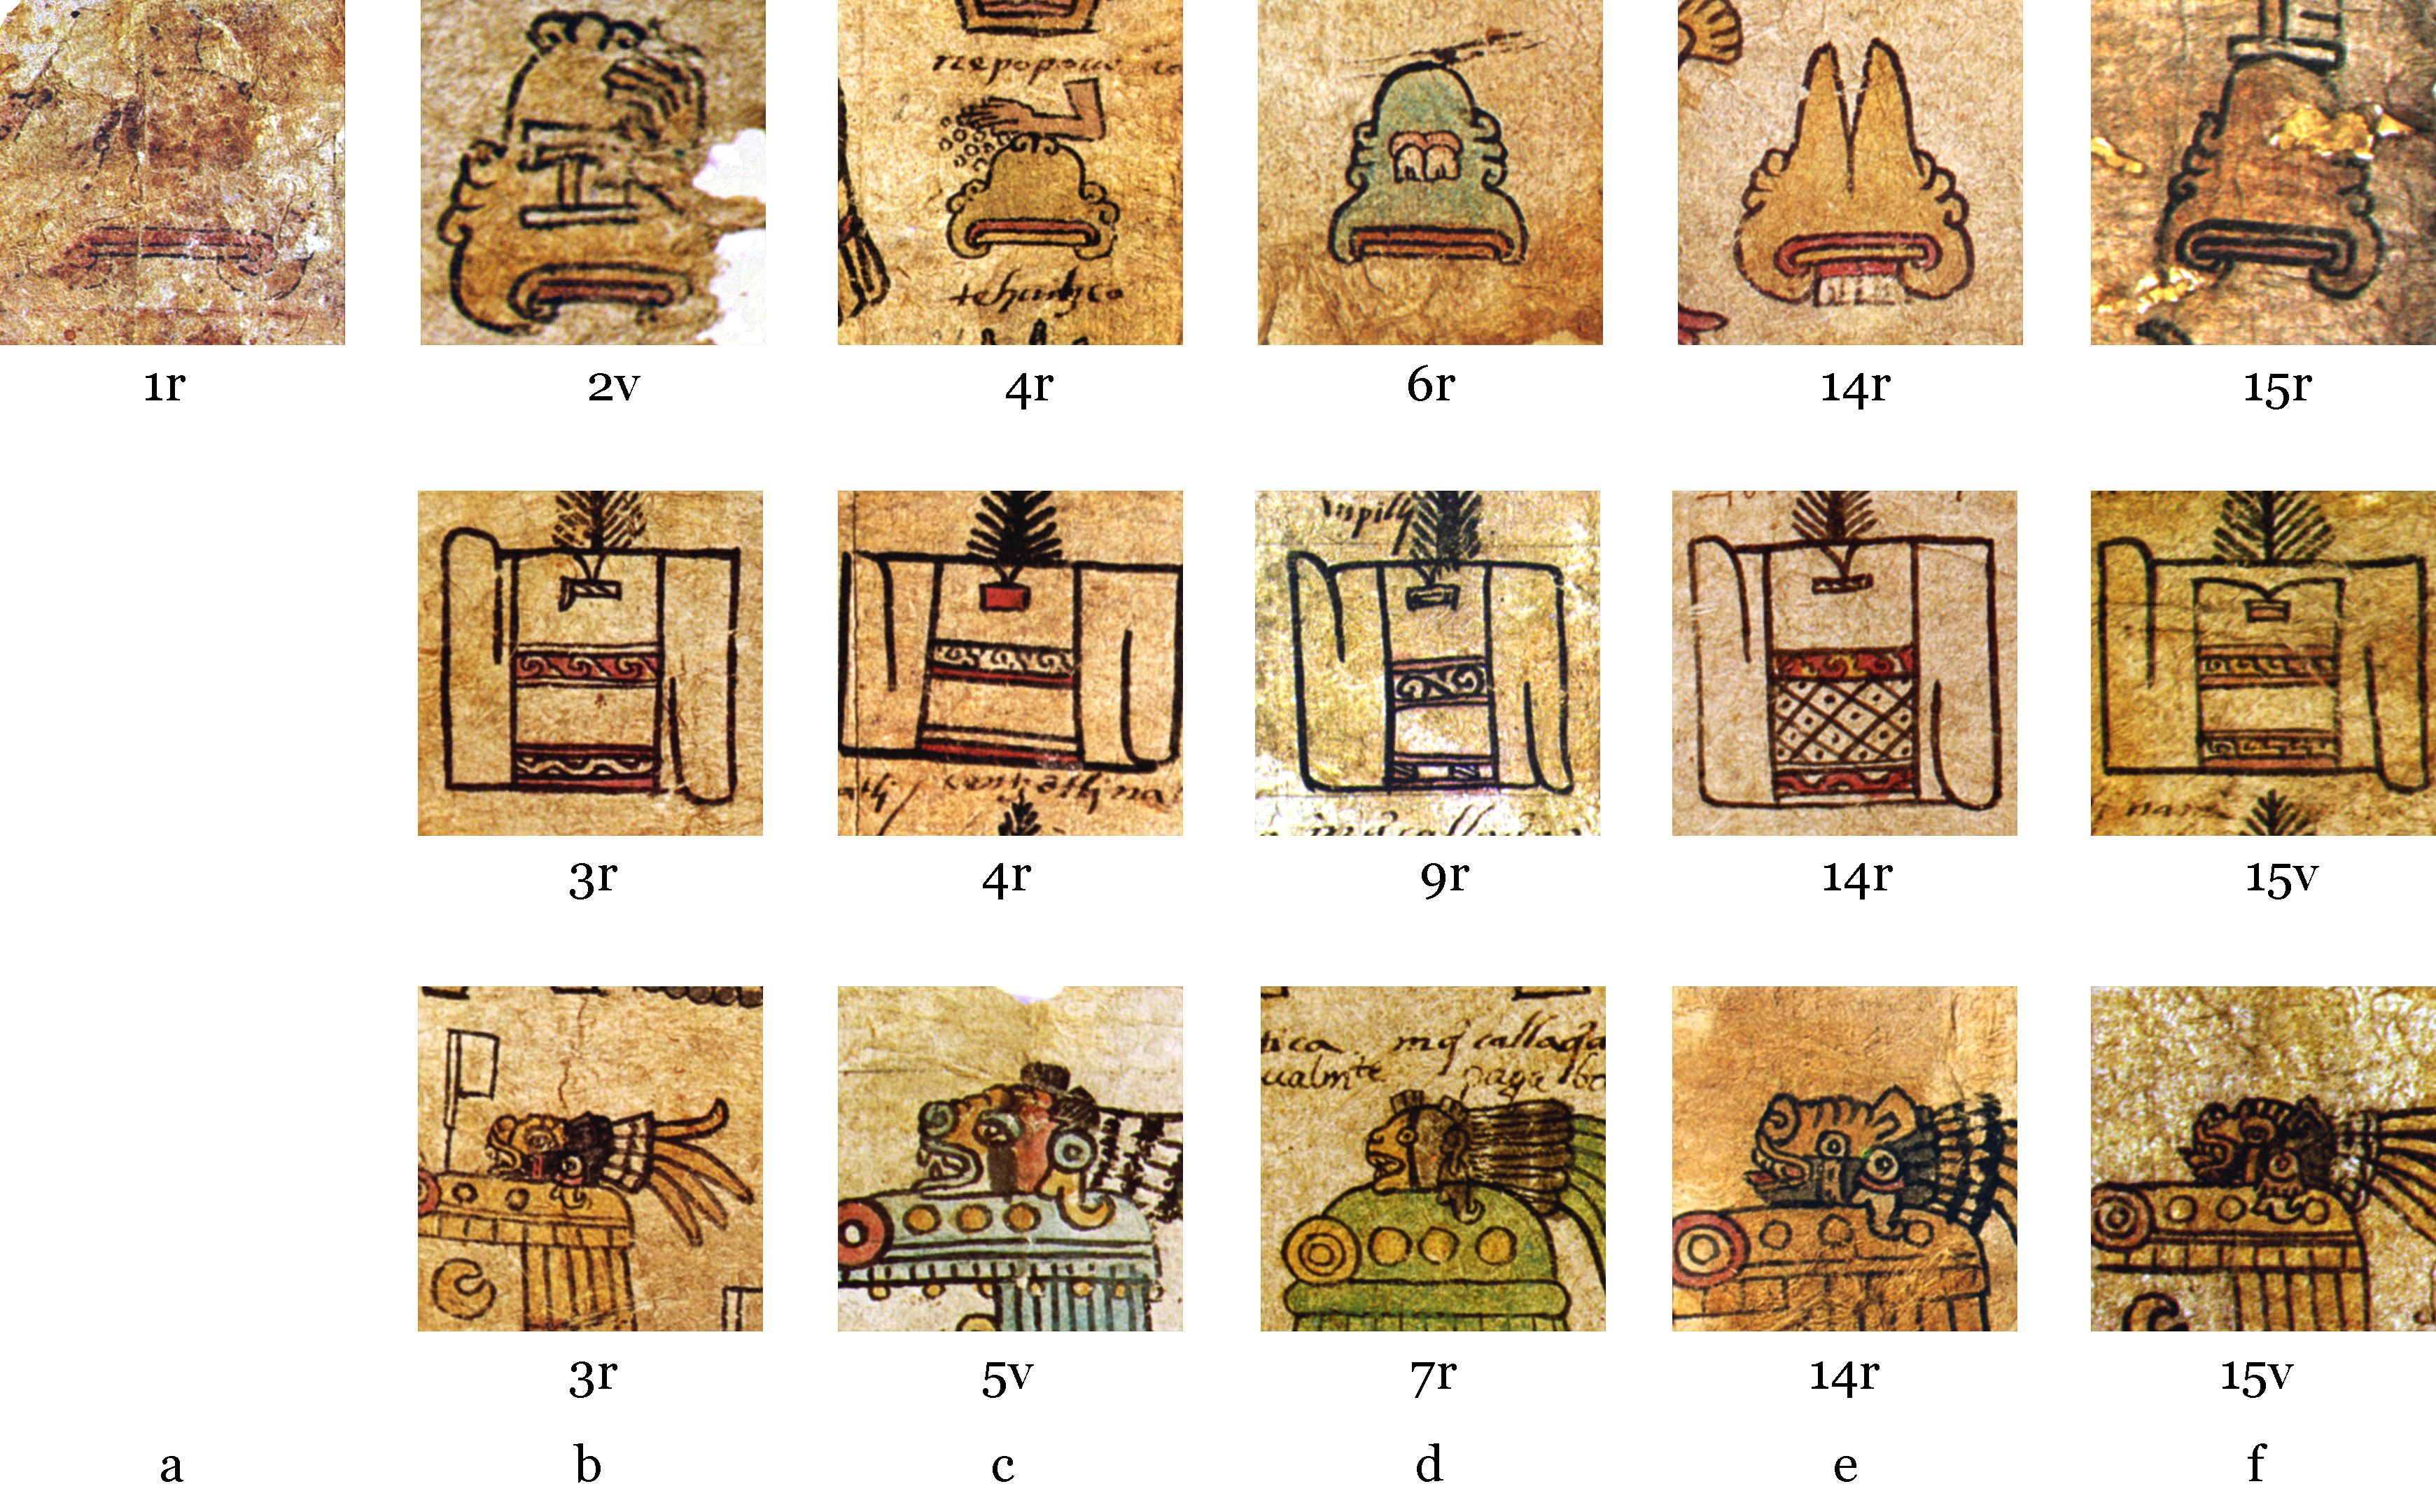 FIGURE 2. How the six scribes (a-f) of the Matr�cula de Tributos represented mountains, bundles of cloth, and the head of Xolotl (a canid supernatural), as argued by Juan Jos� Batalla Rosado.